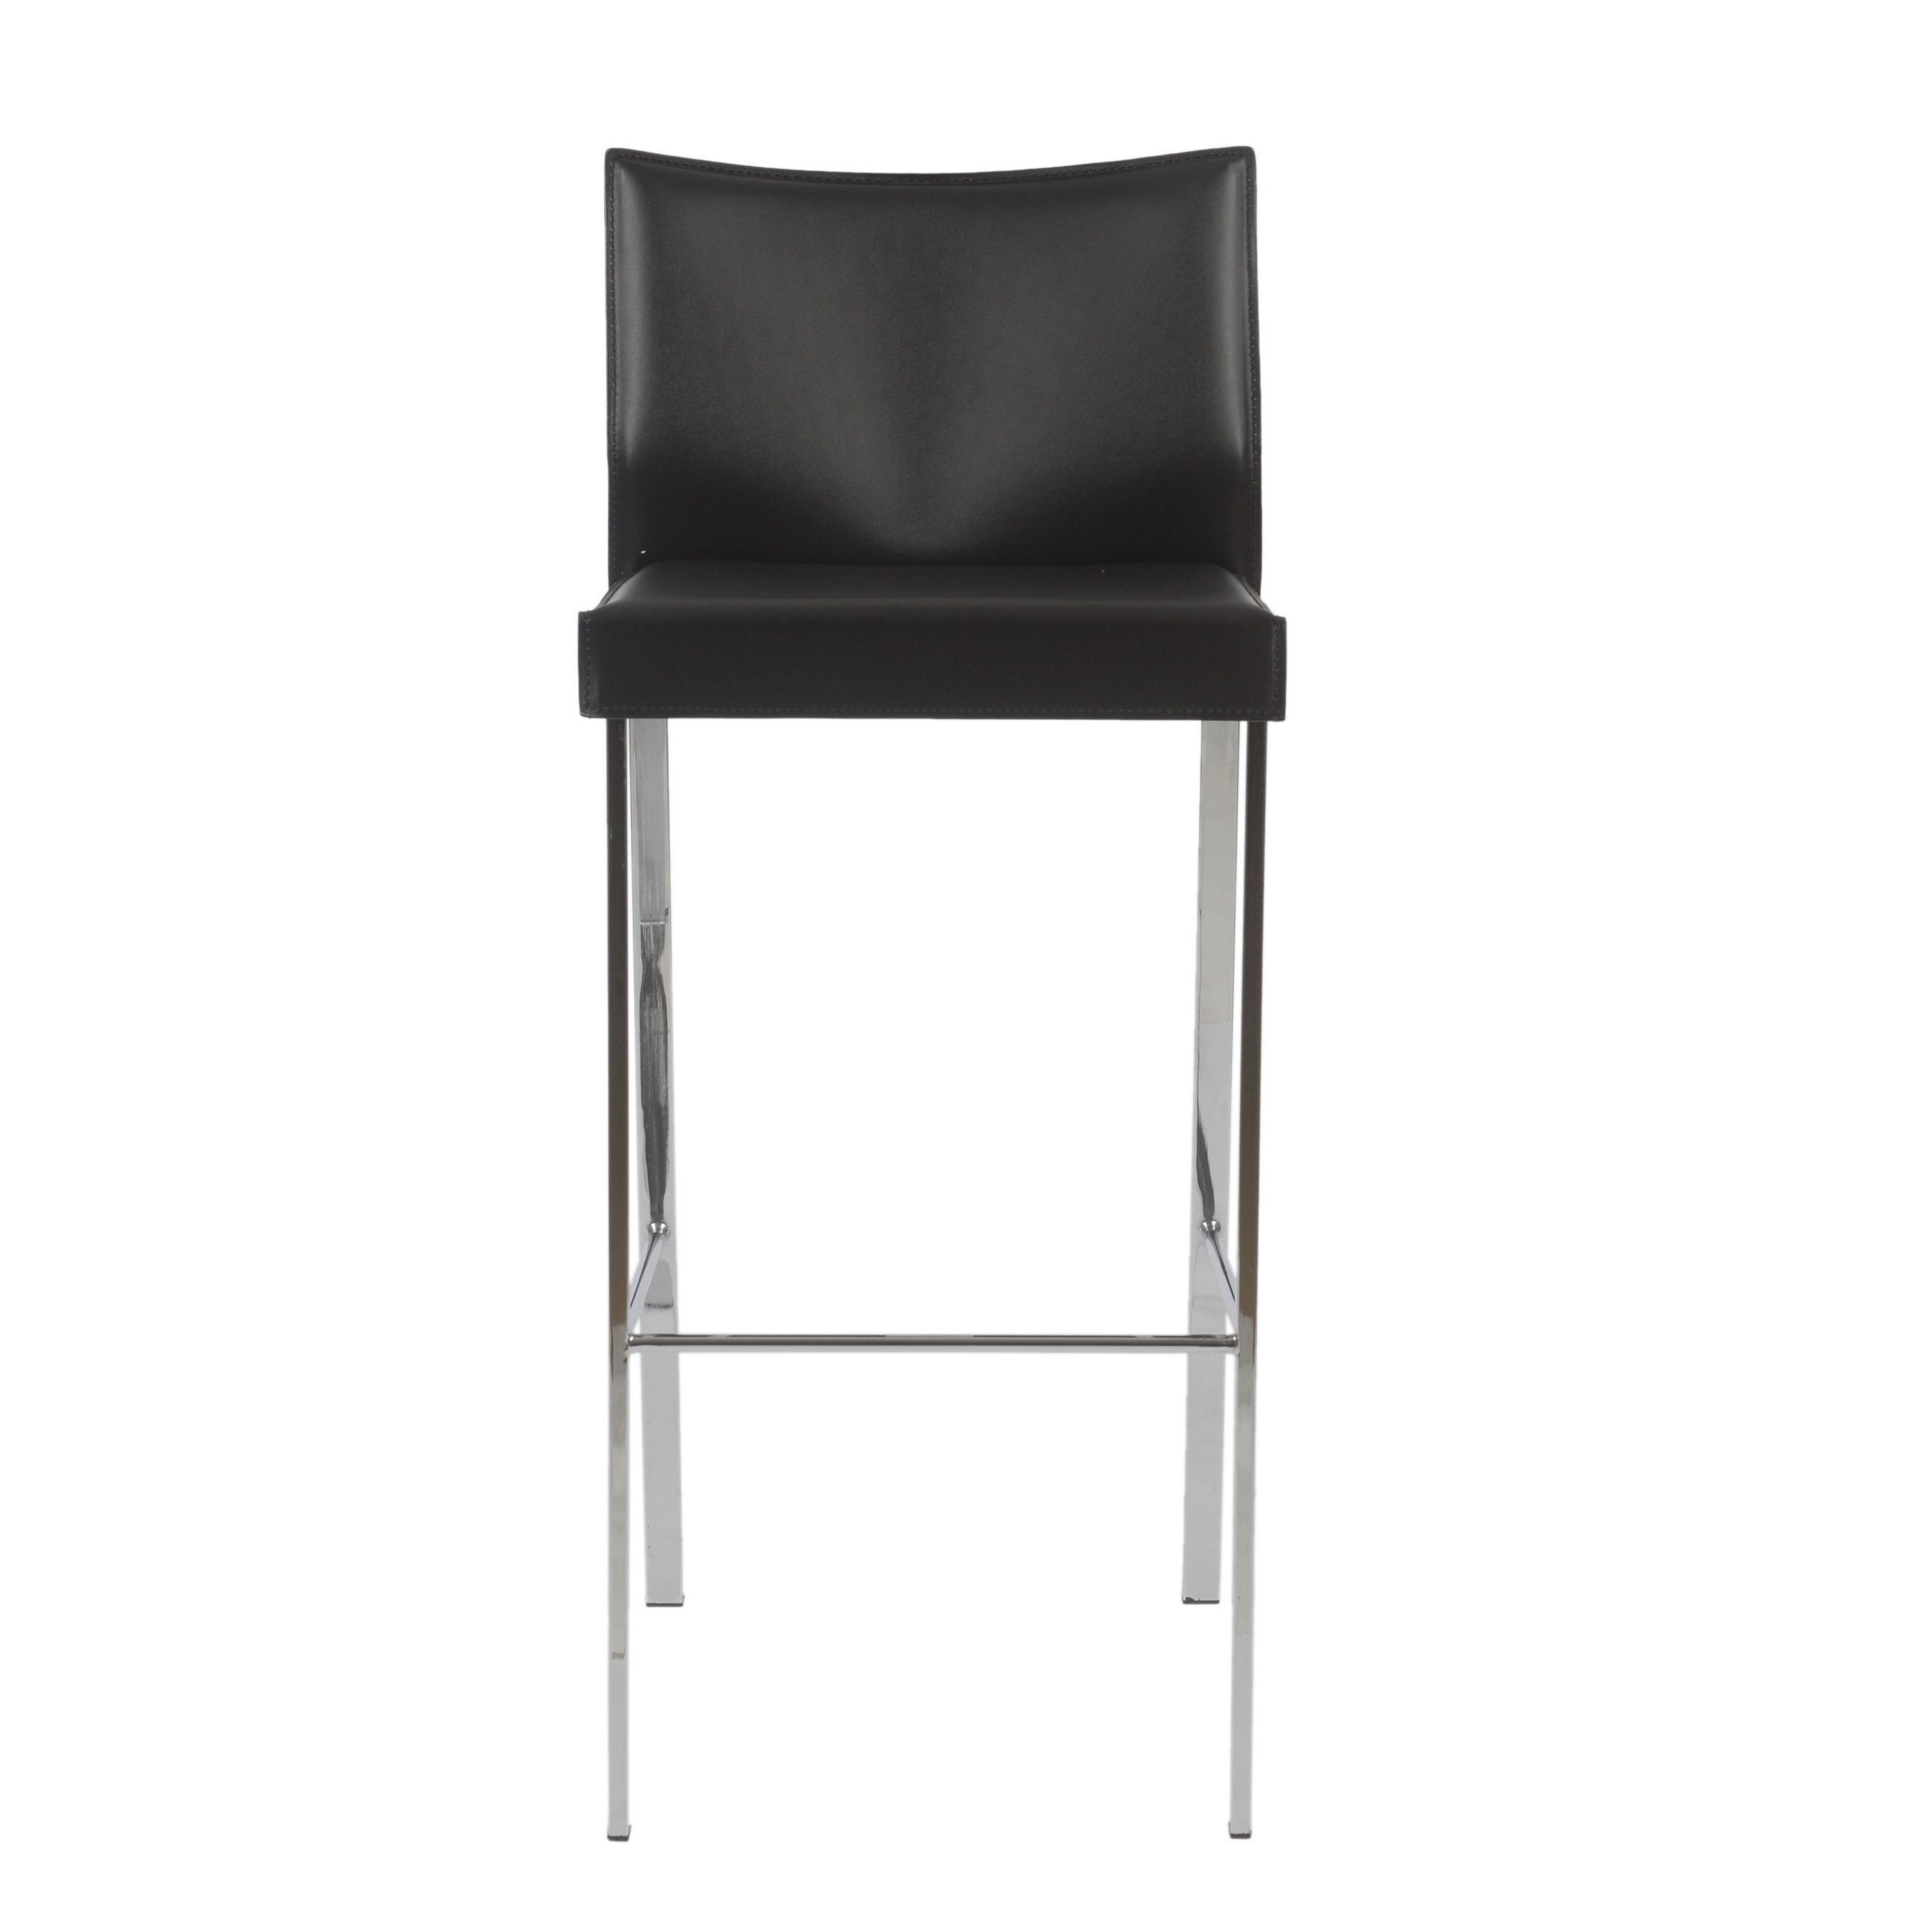 Astonishing Riley 29 9 Inch Black Leather Chrome Bar Stool Set Of 2 Gmtry Best Dining Table And Chair Ideas Images Gmtryco